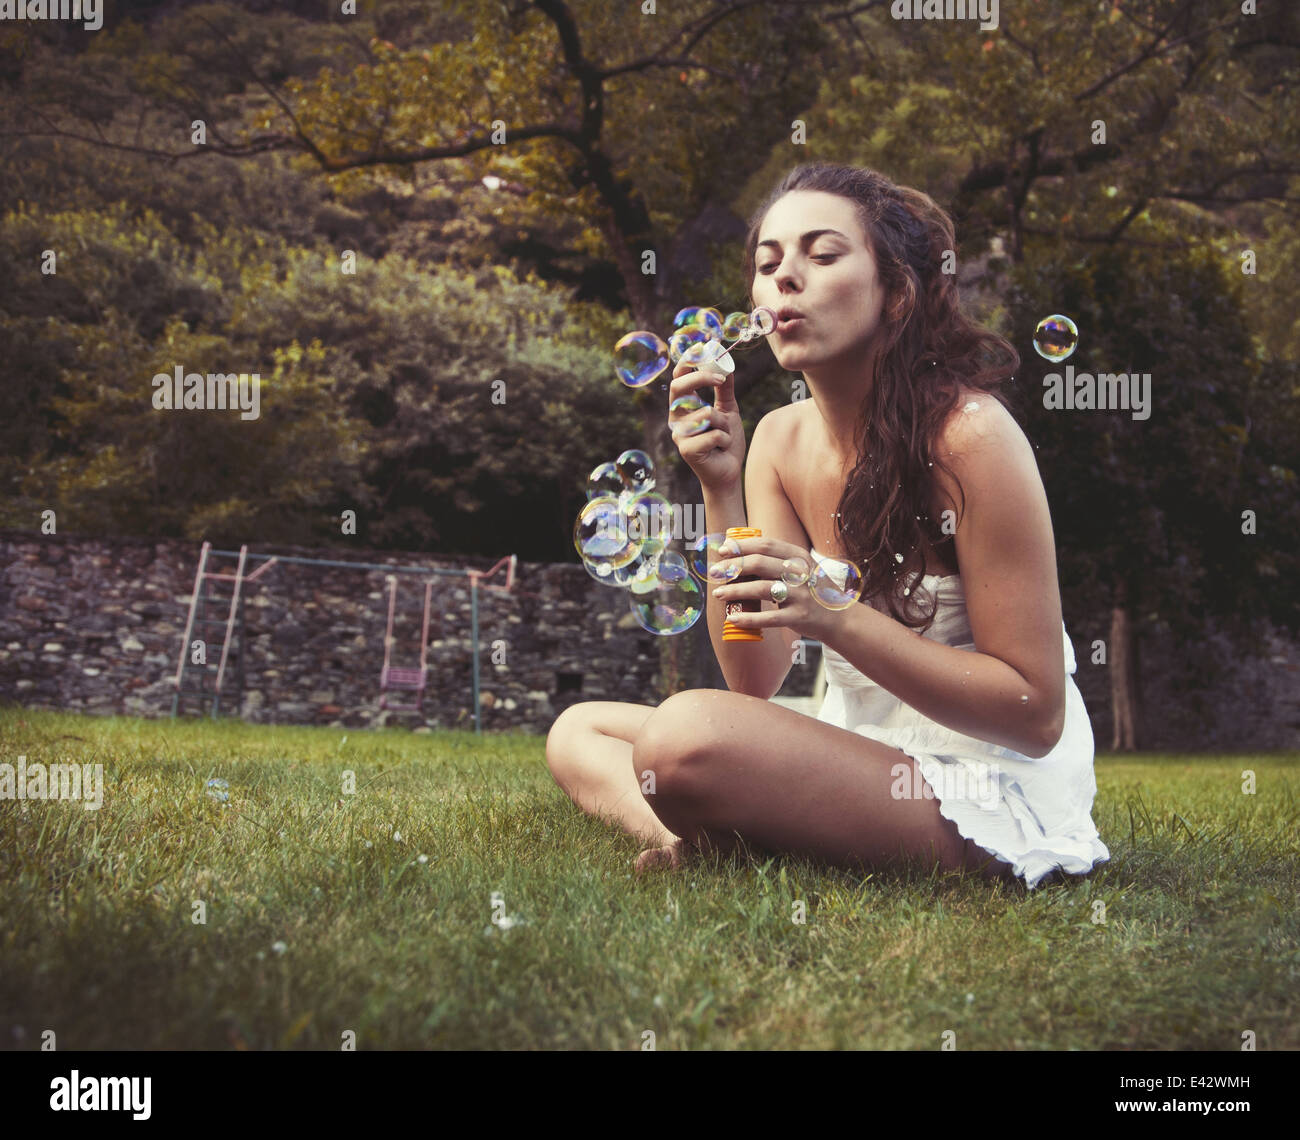 Young woman sitting in field blowing bubbles - Stock Image